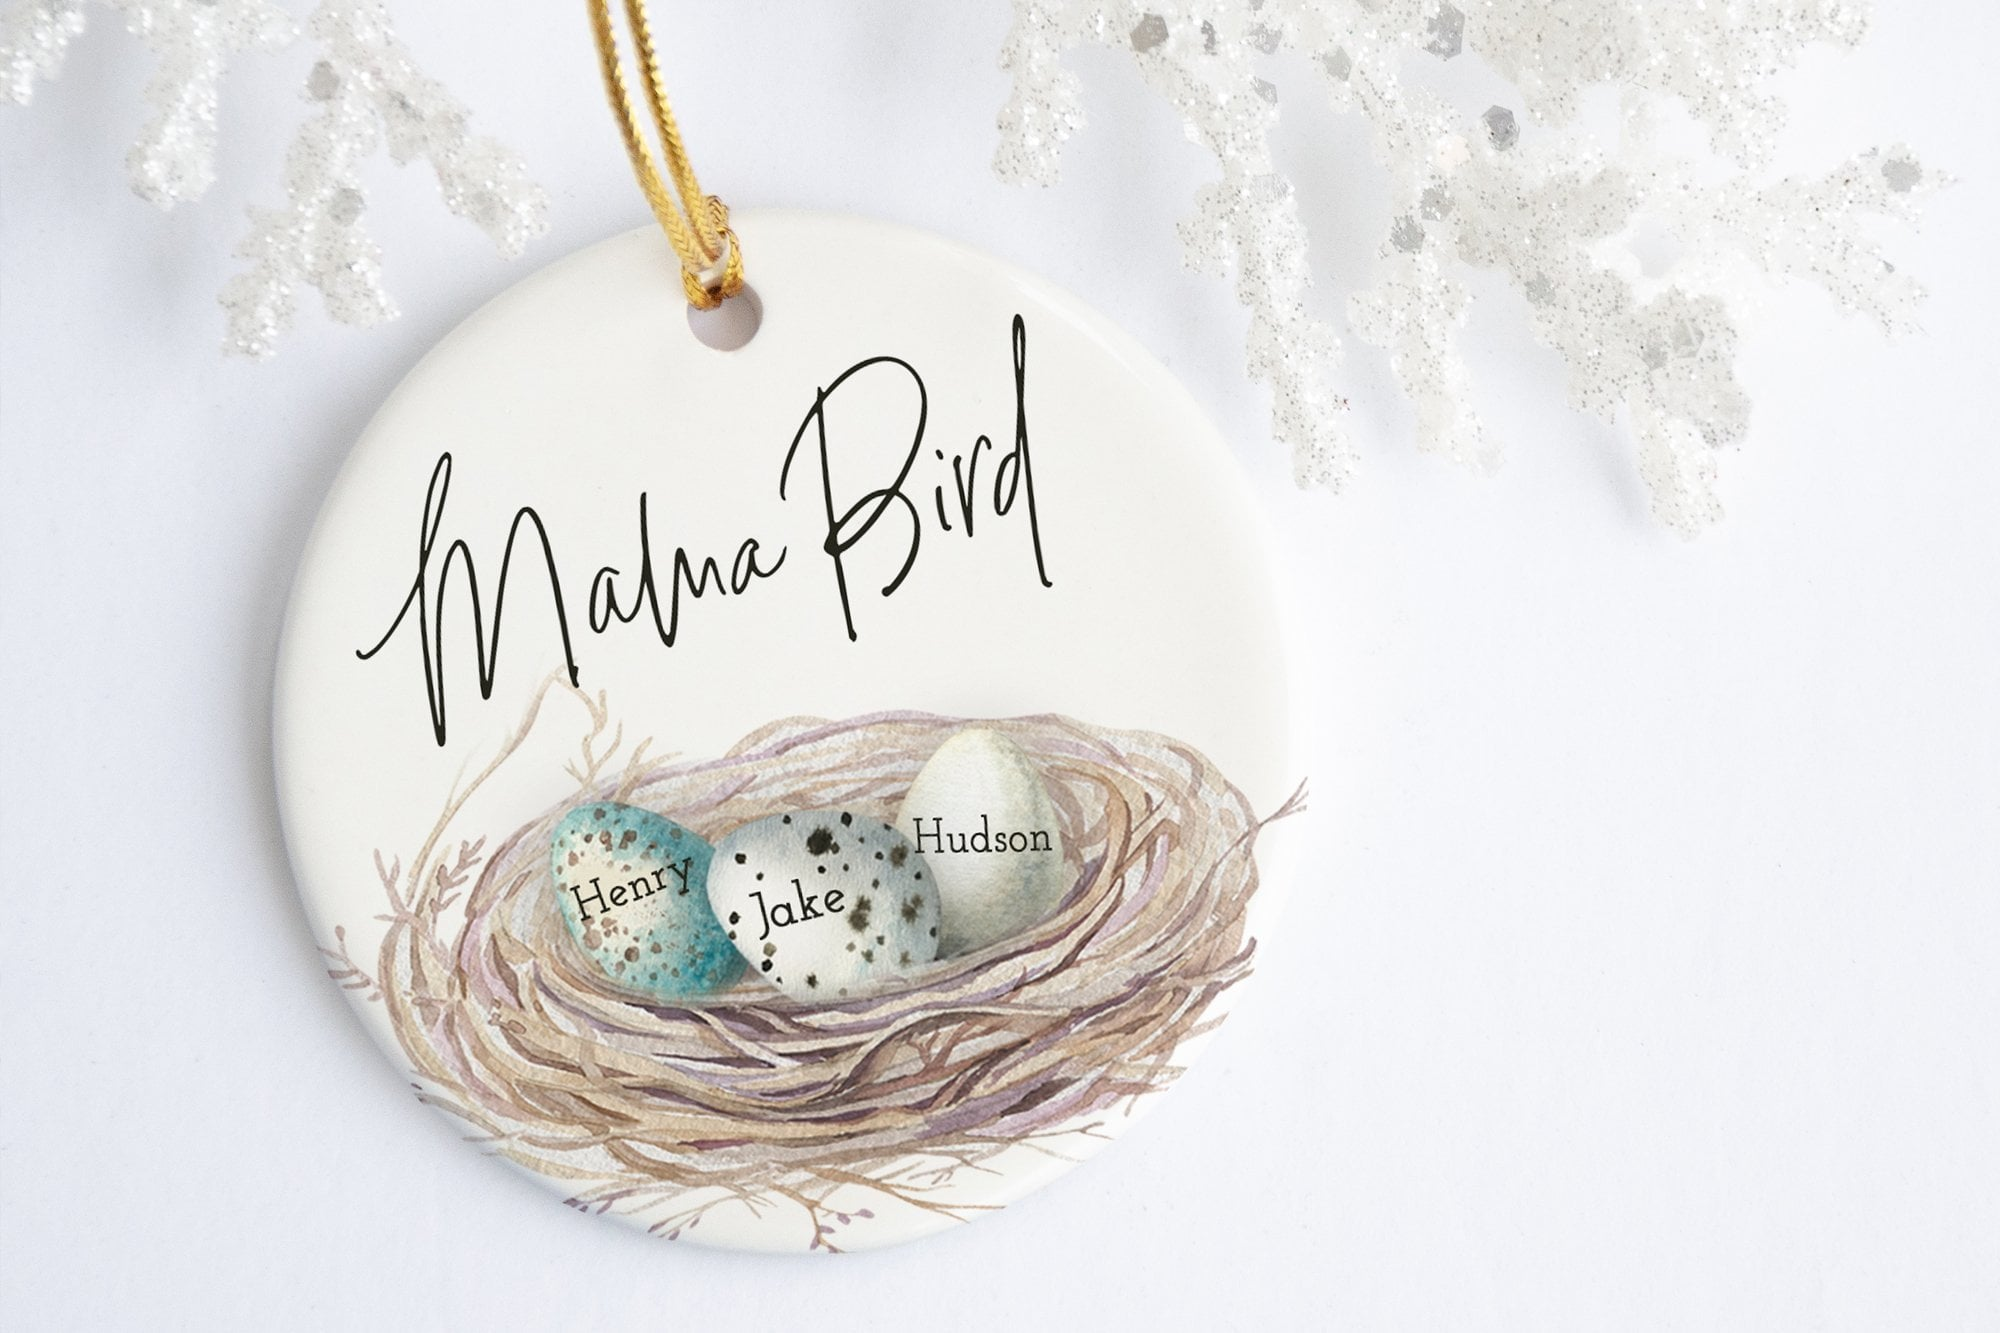 Personalized Gift For Mom | Mama Bird Ornament | Ollie + Hank